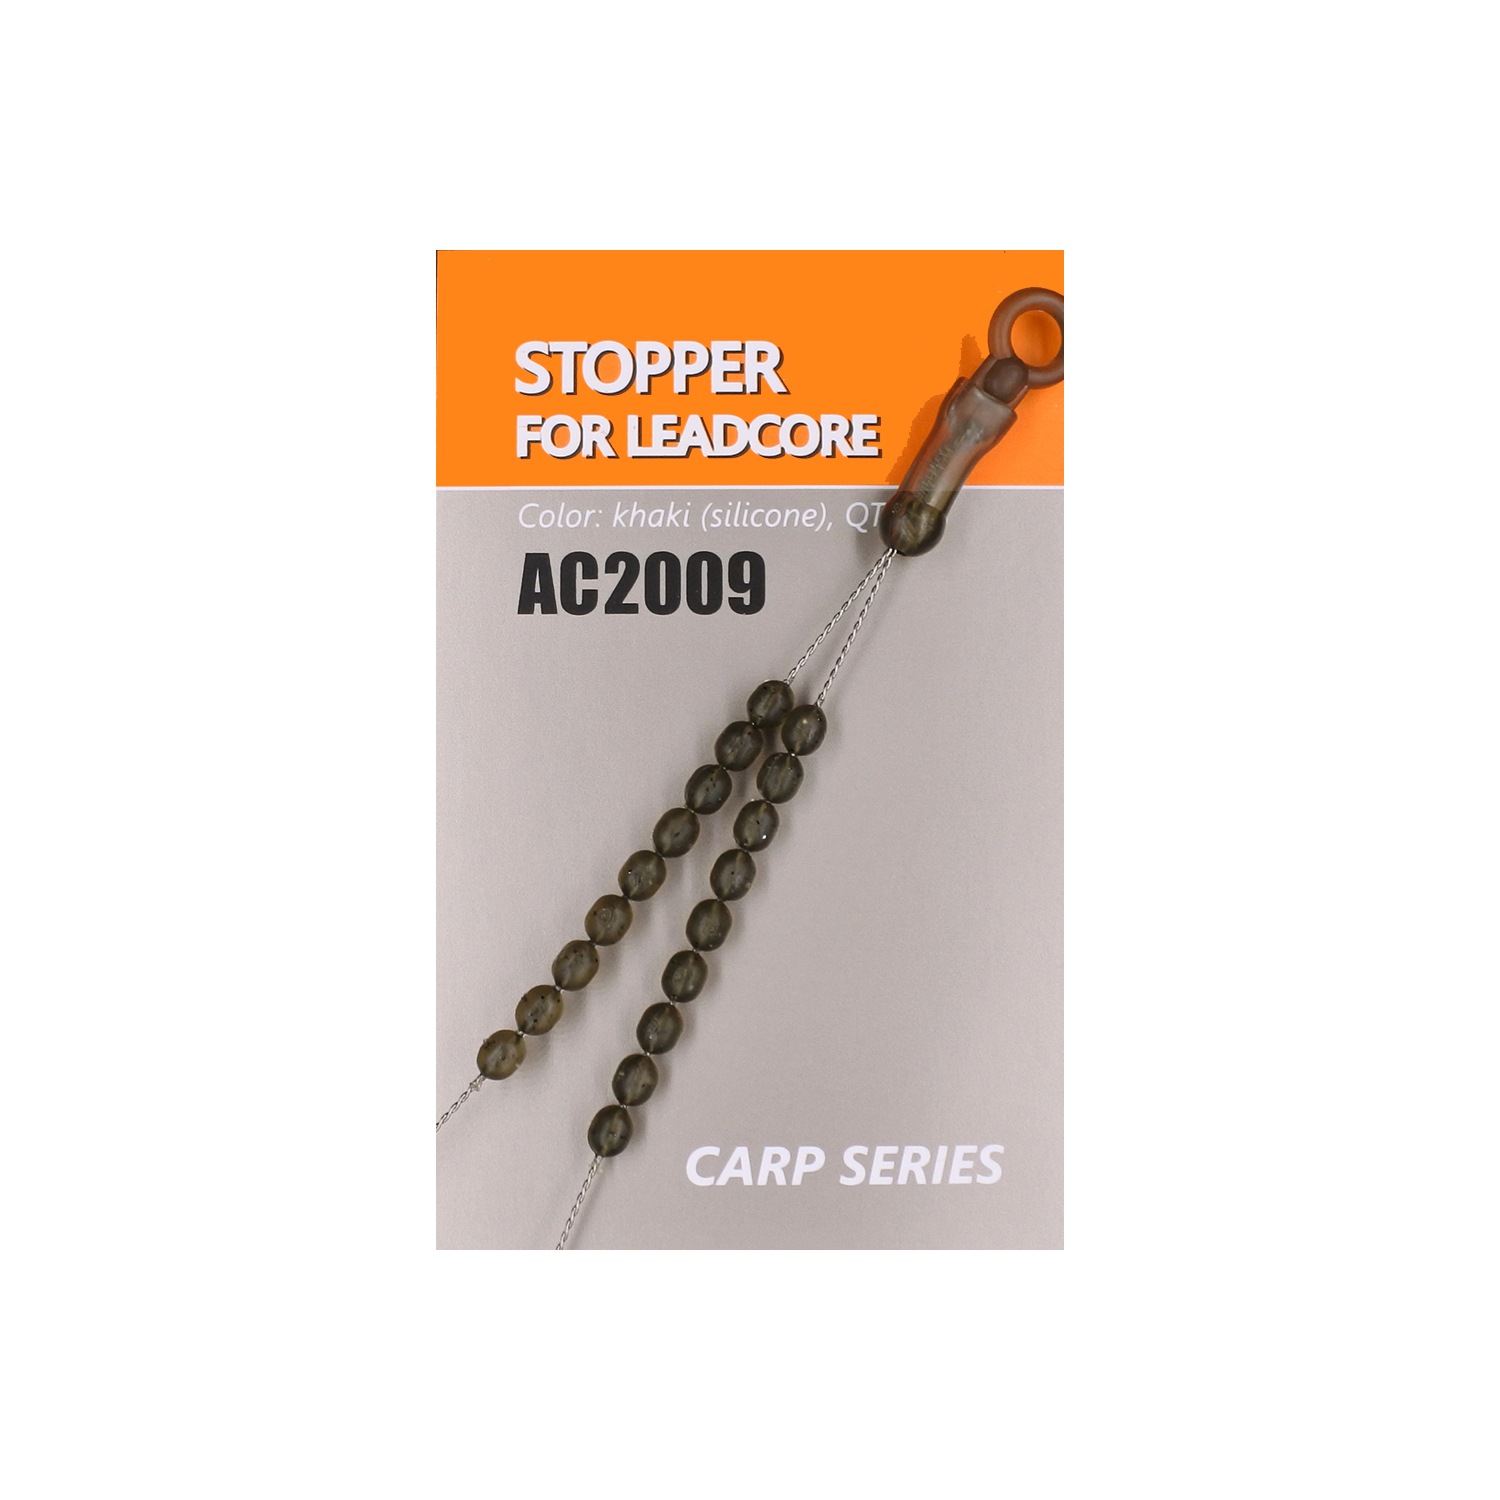 Стопора для оснасток Orange Carp Stopper for leadcore  (зеленый)